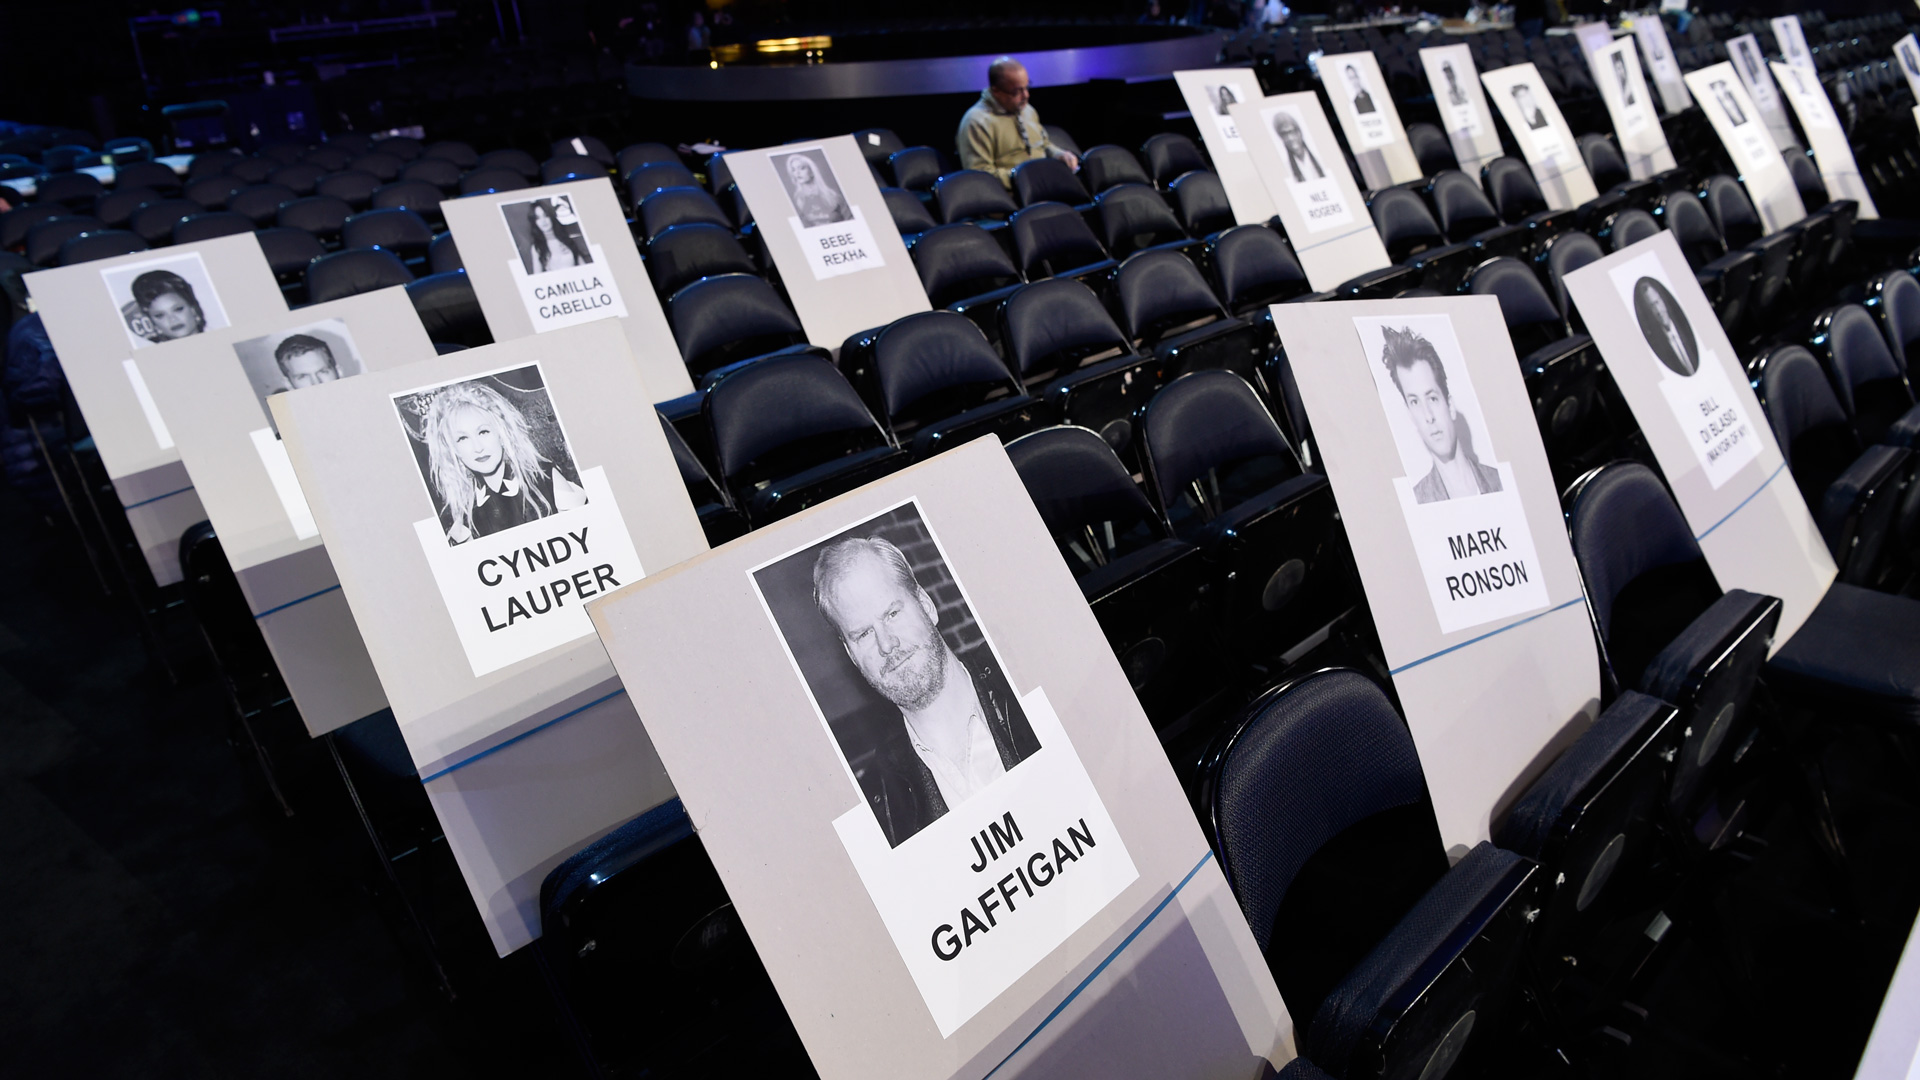 Singer Cyndi Lauper, comedian Jim Gaffigan, and producer Mark Ronson will be seated in the same area.